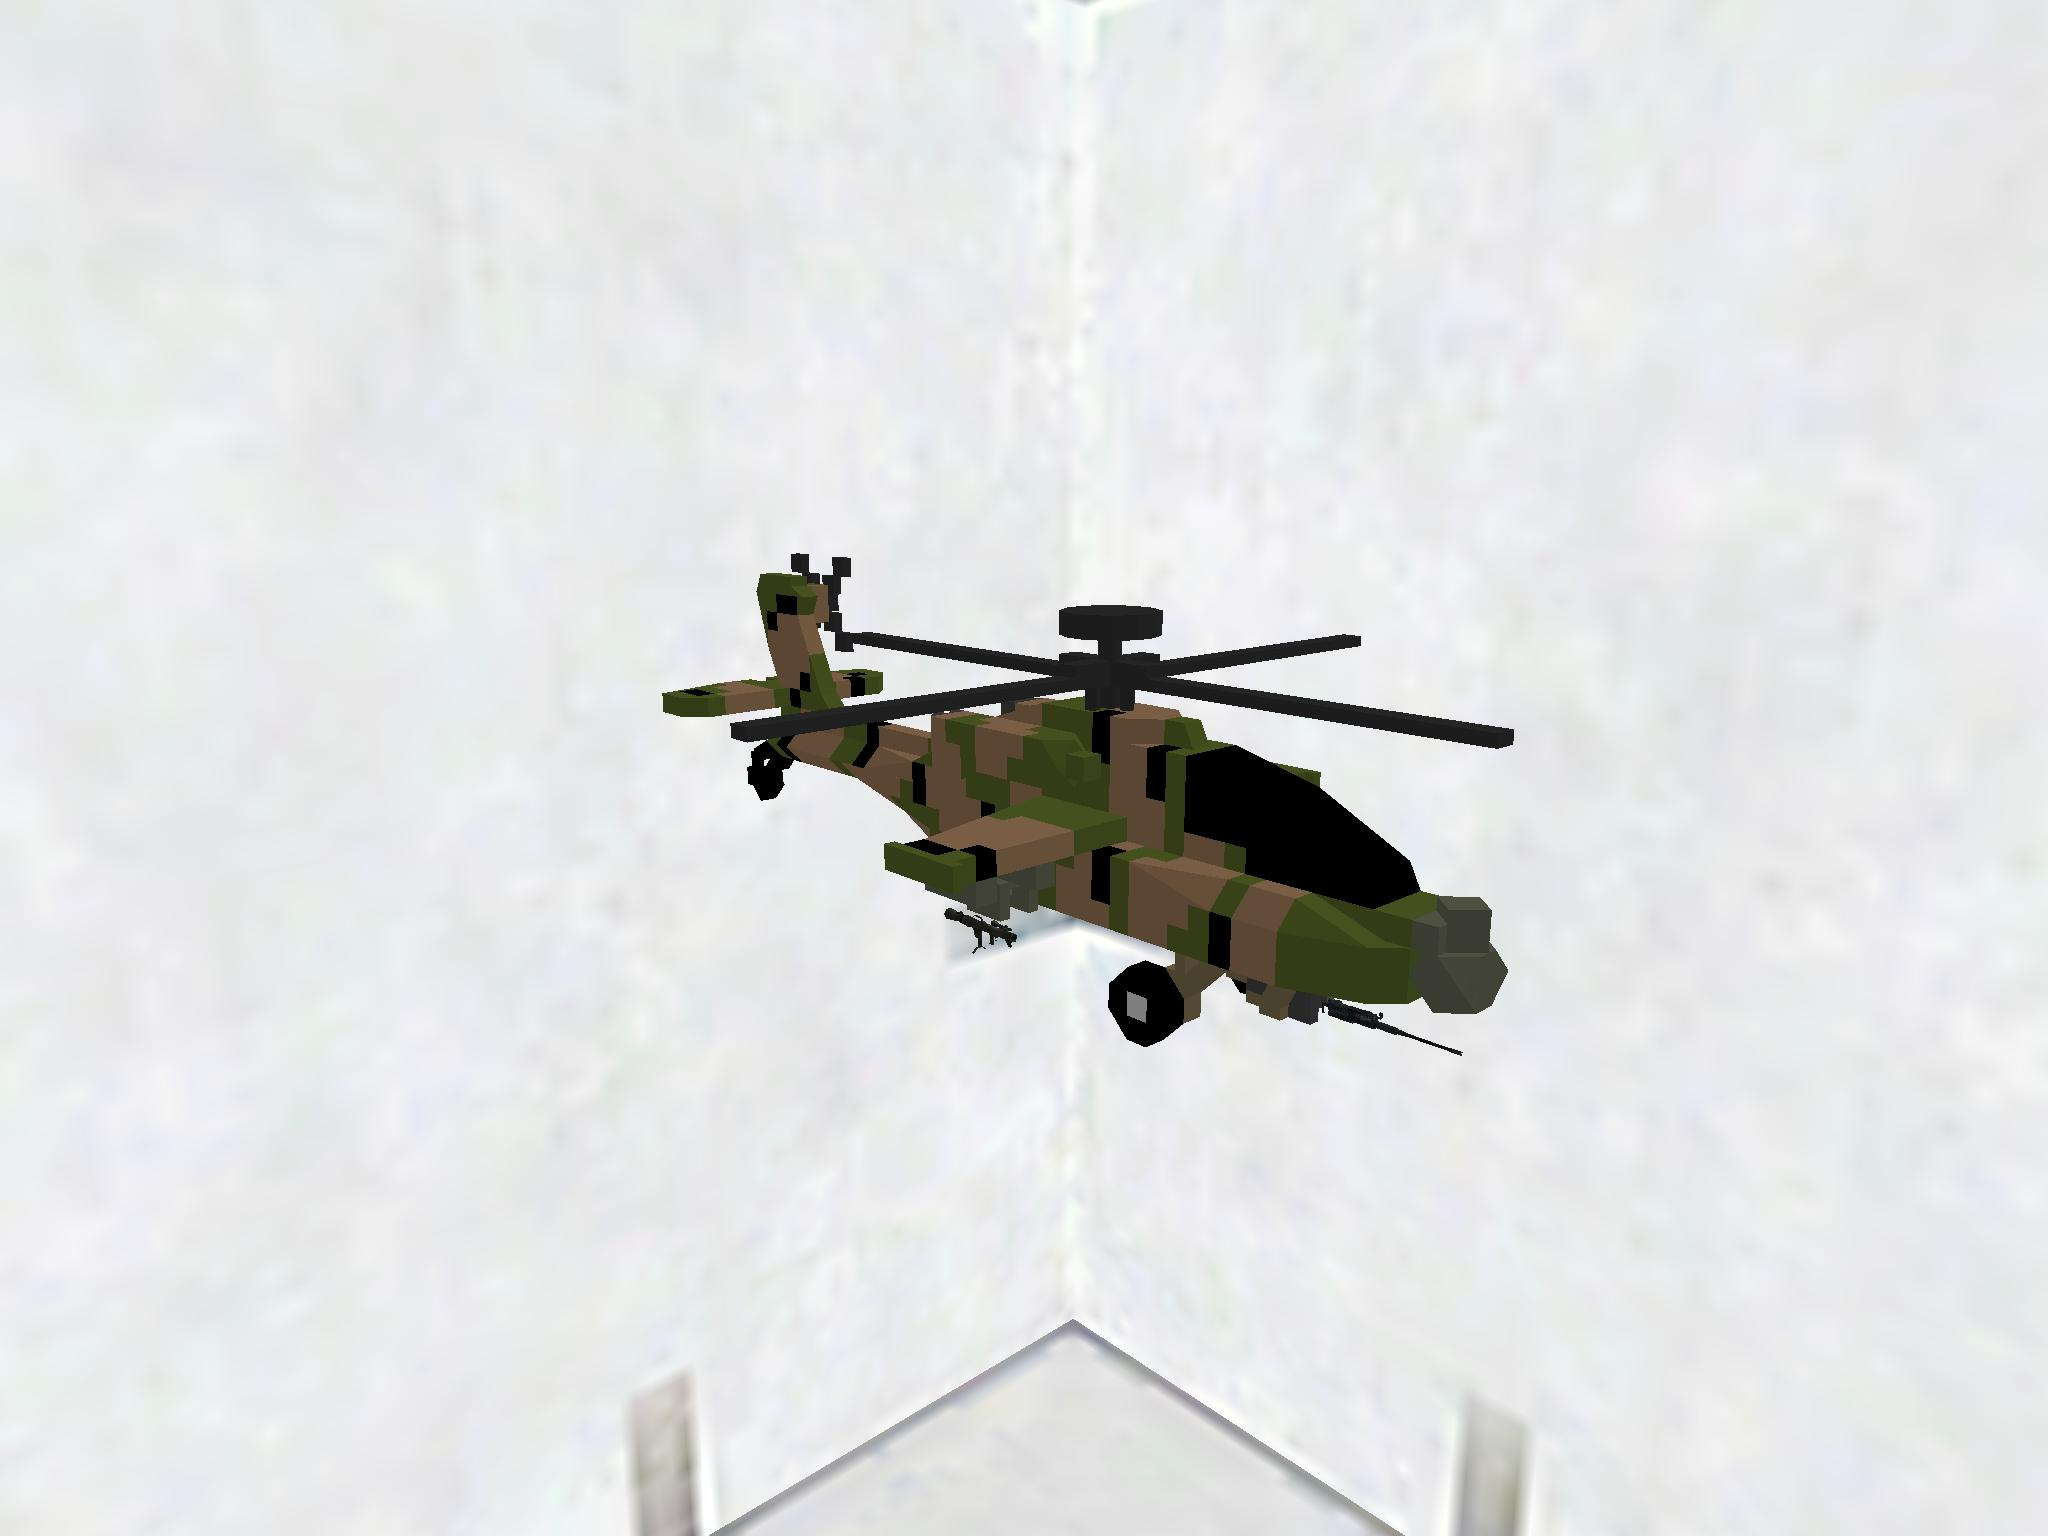 Japanese helicopter